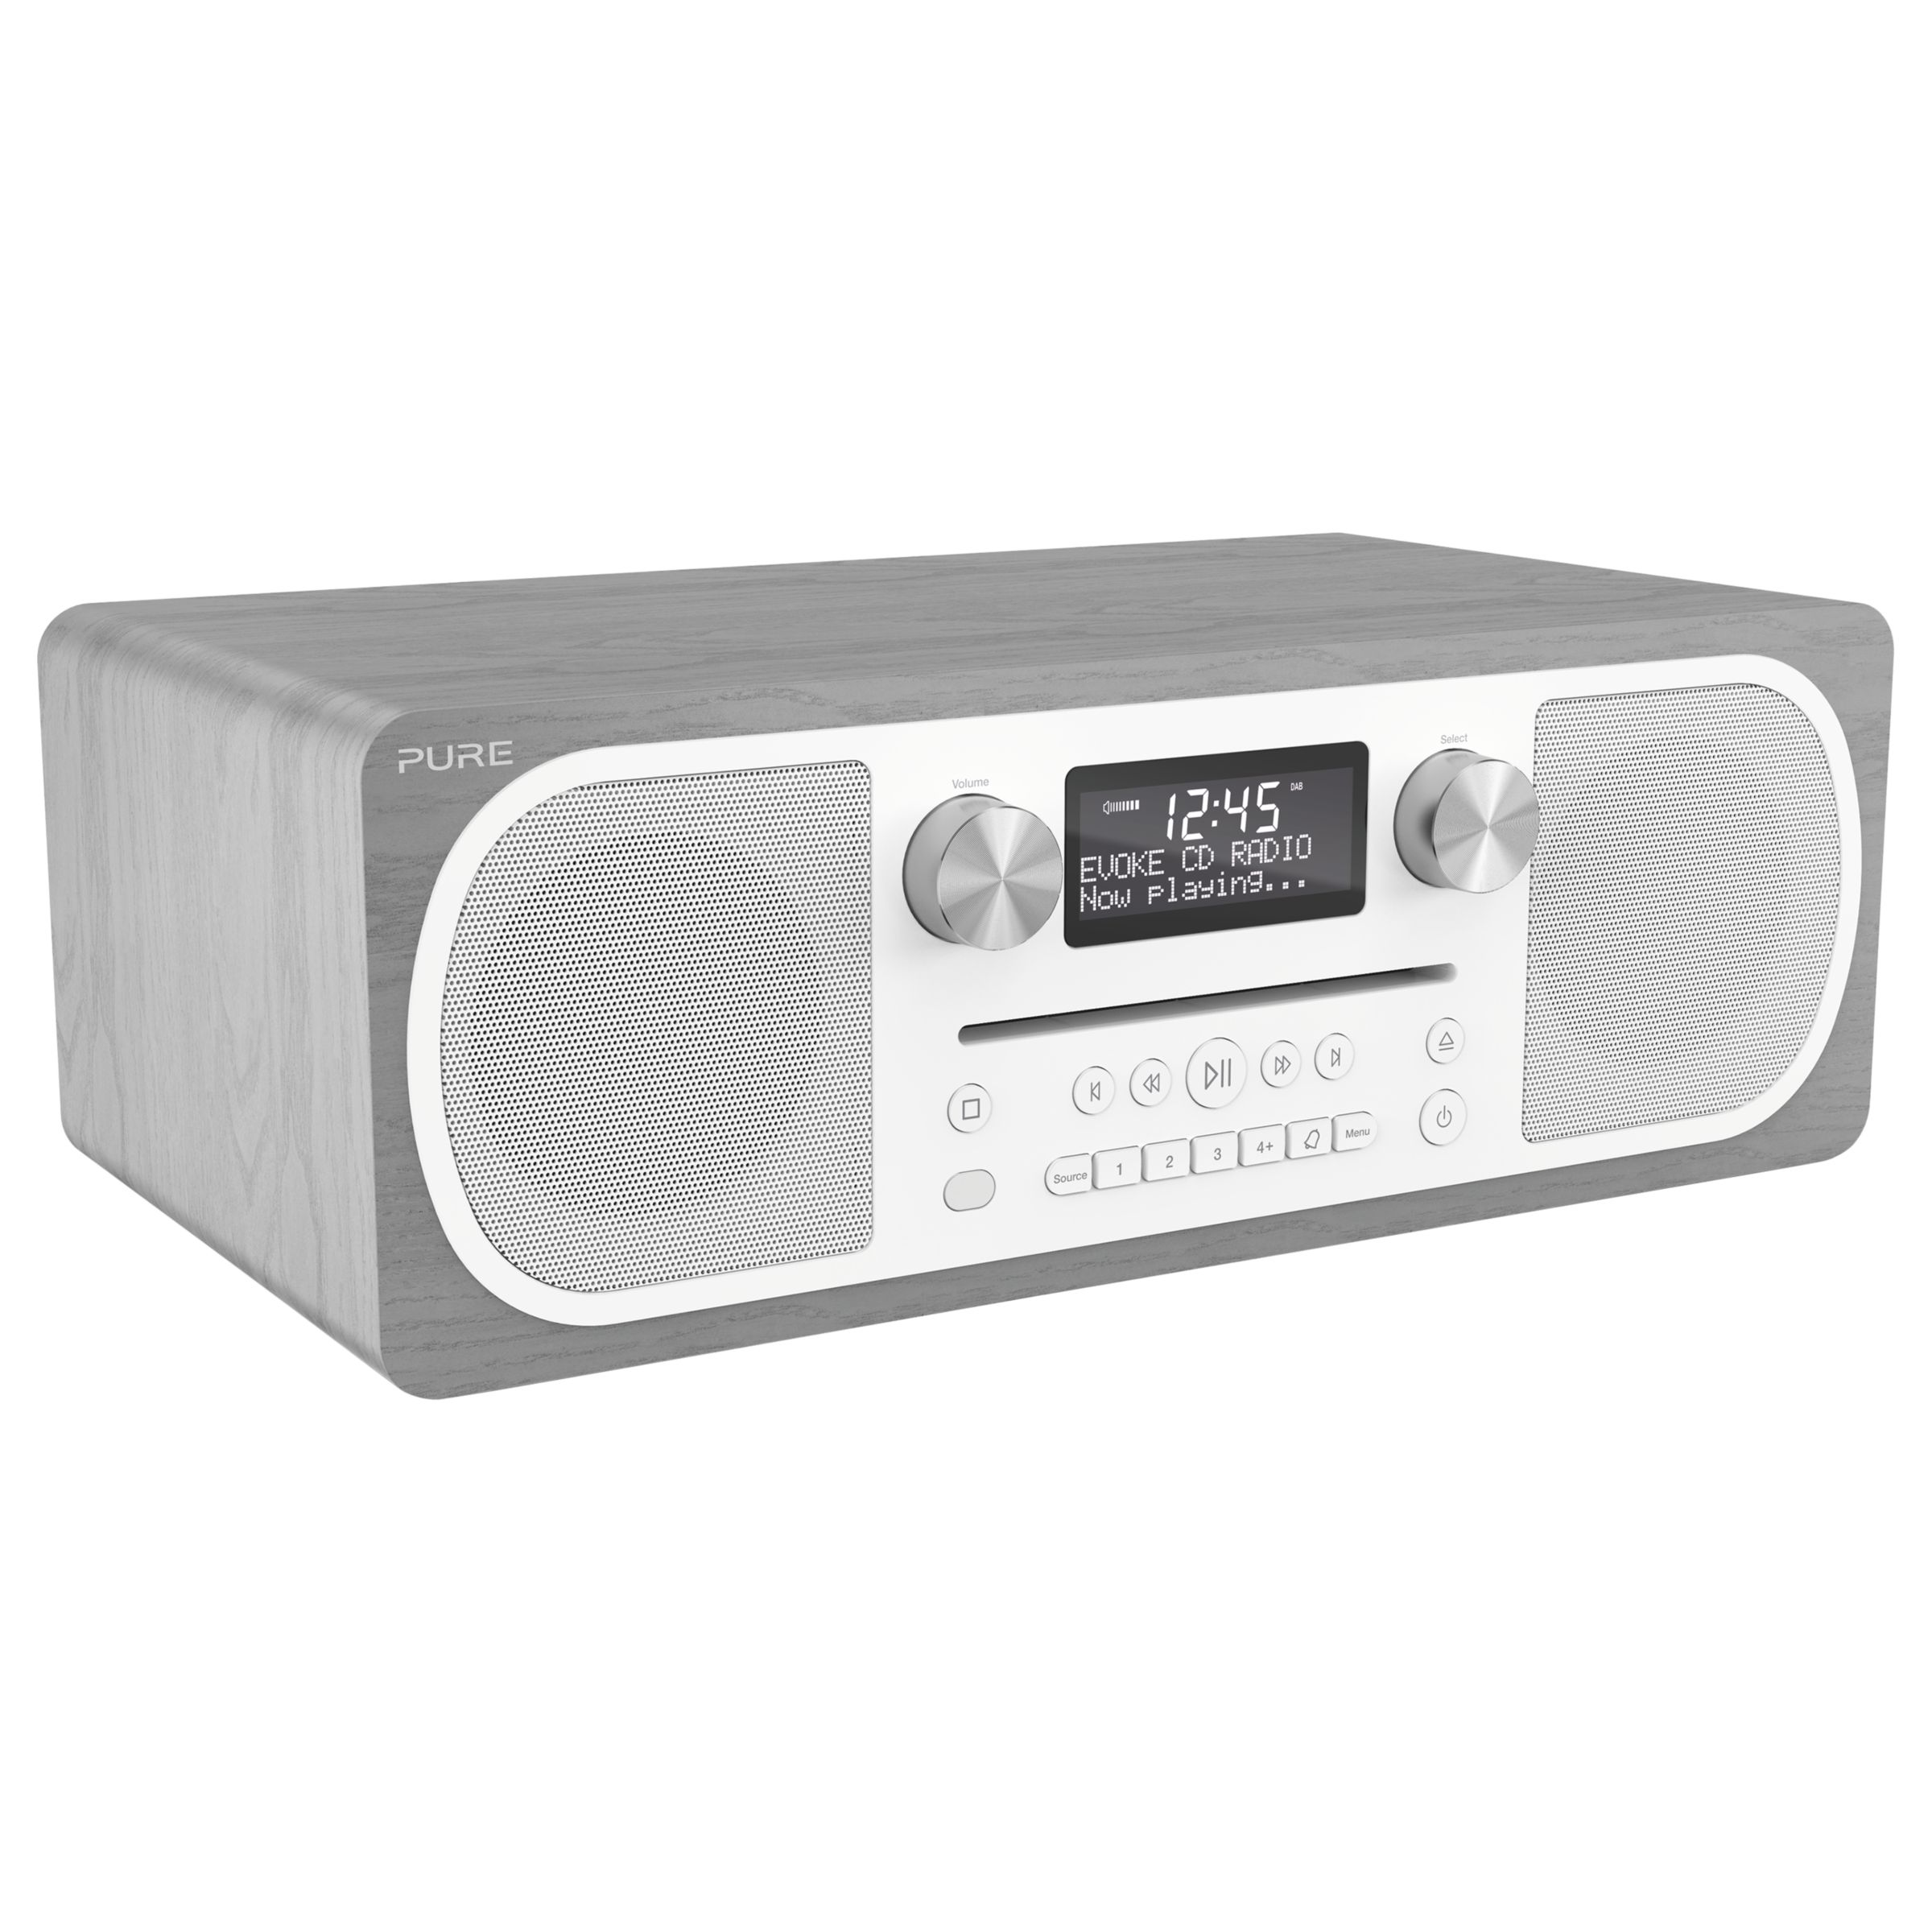 Pure Pure Evoke C-D6 DAB+/FM Bluetooth Stereo All-In-One Music System With Remote Control